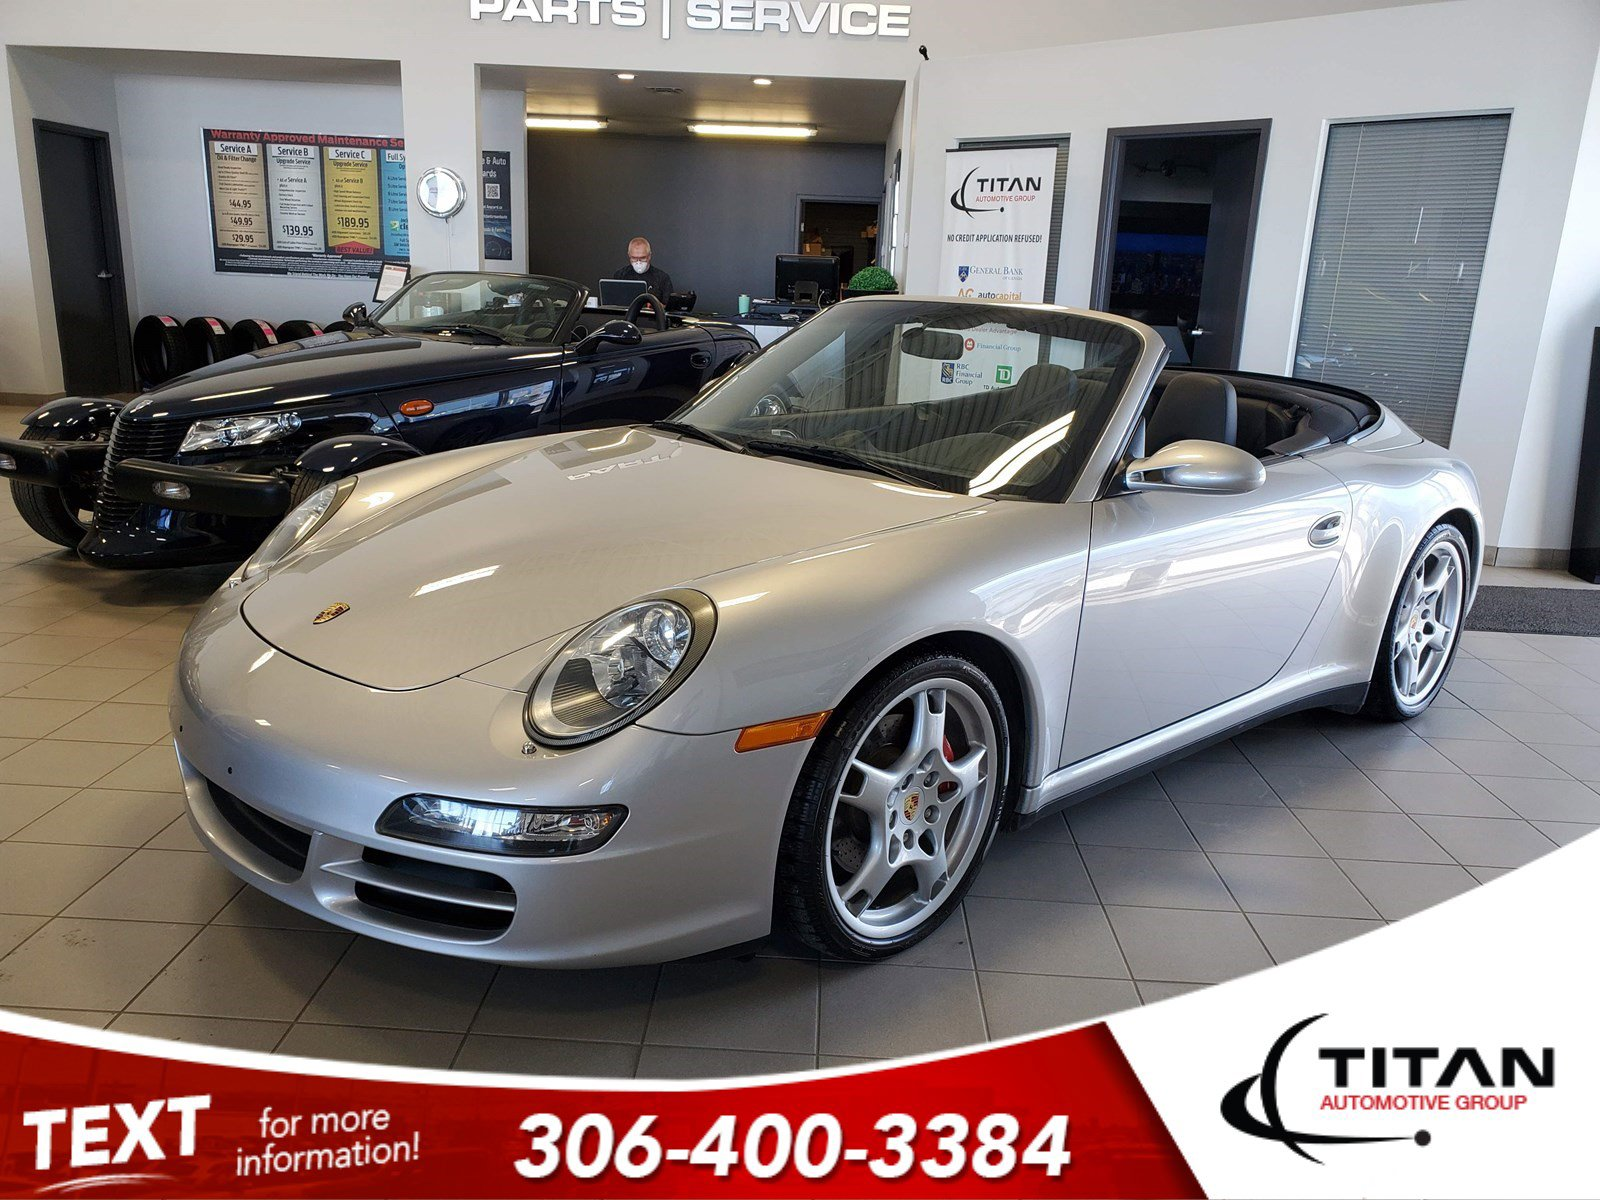 Pre-Owned 2006 Porsche 911 Carrera 4S 3.8L 355HP | Convertible | AWD | Bose | Manual | Leather